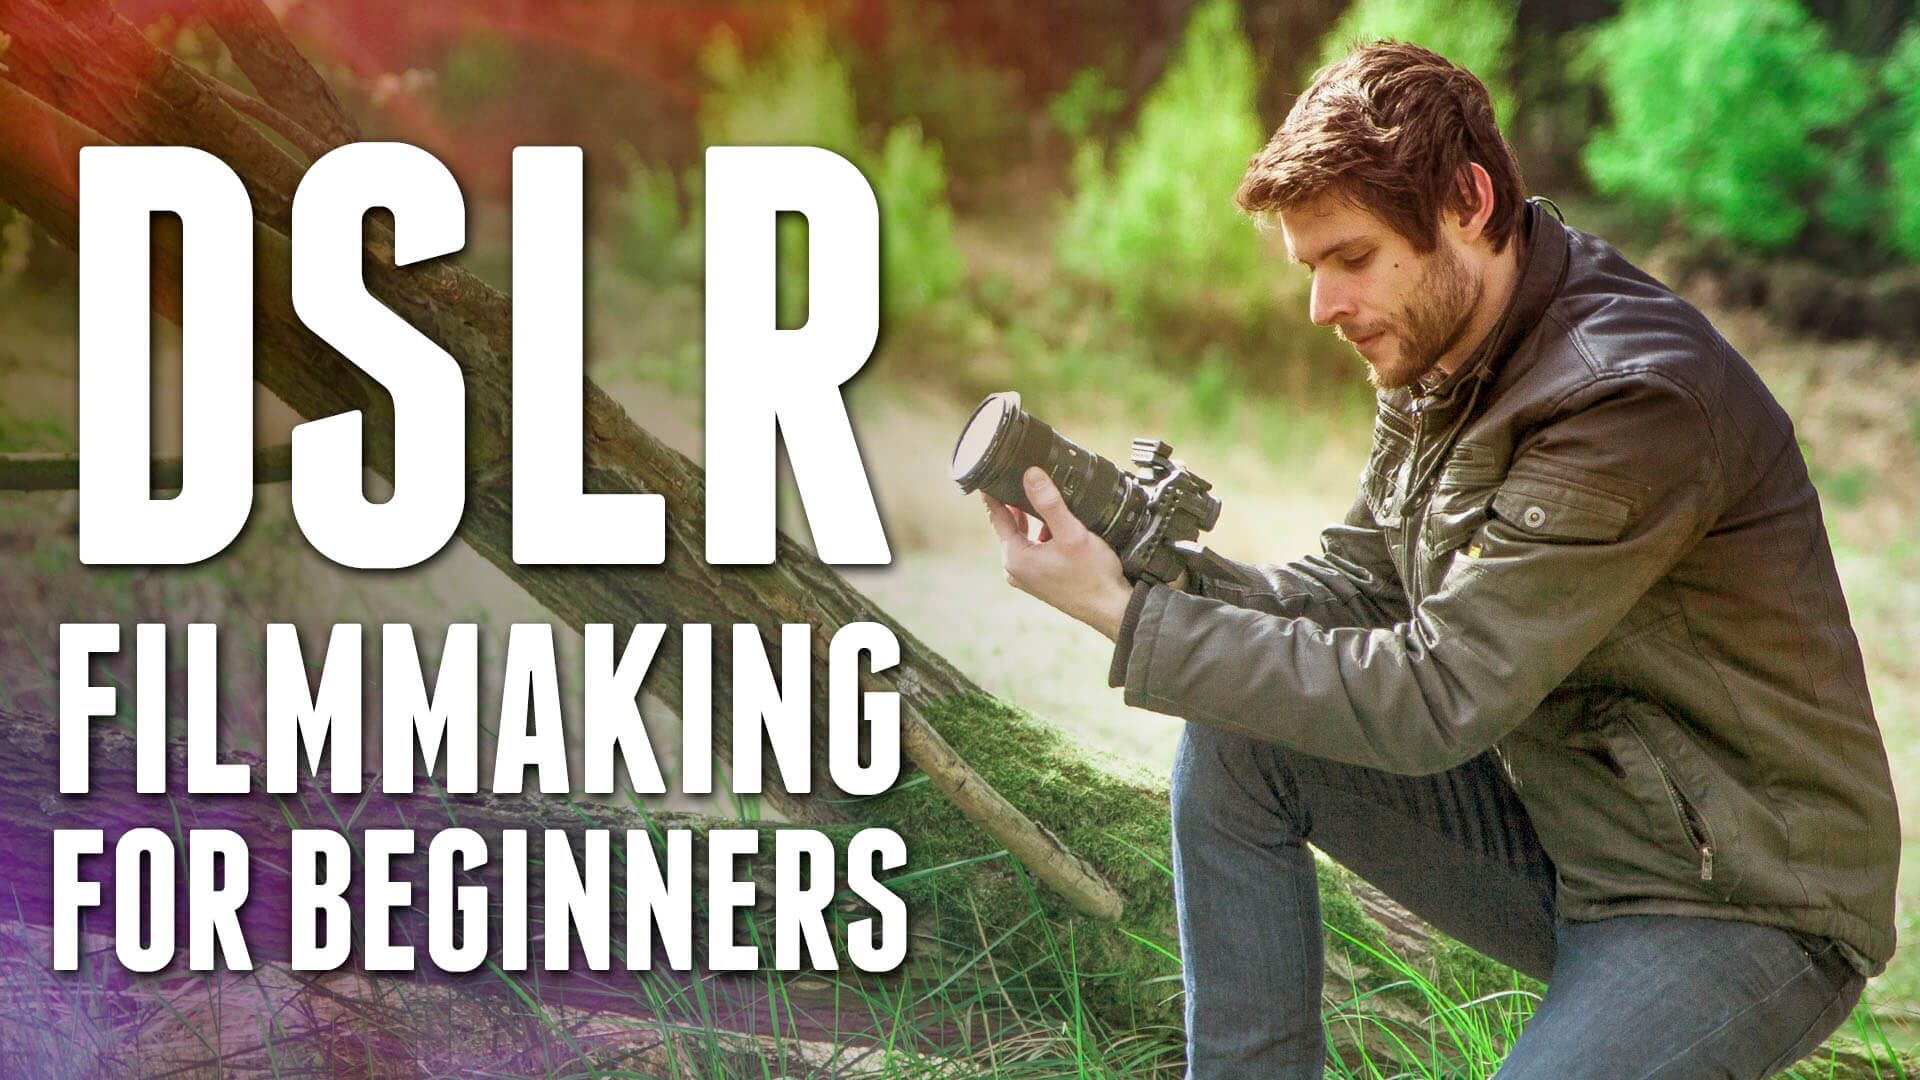 DSLR Filmmaking for Beginners